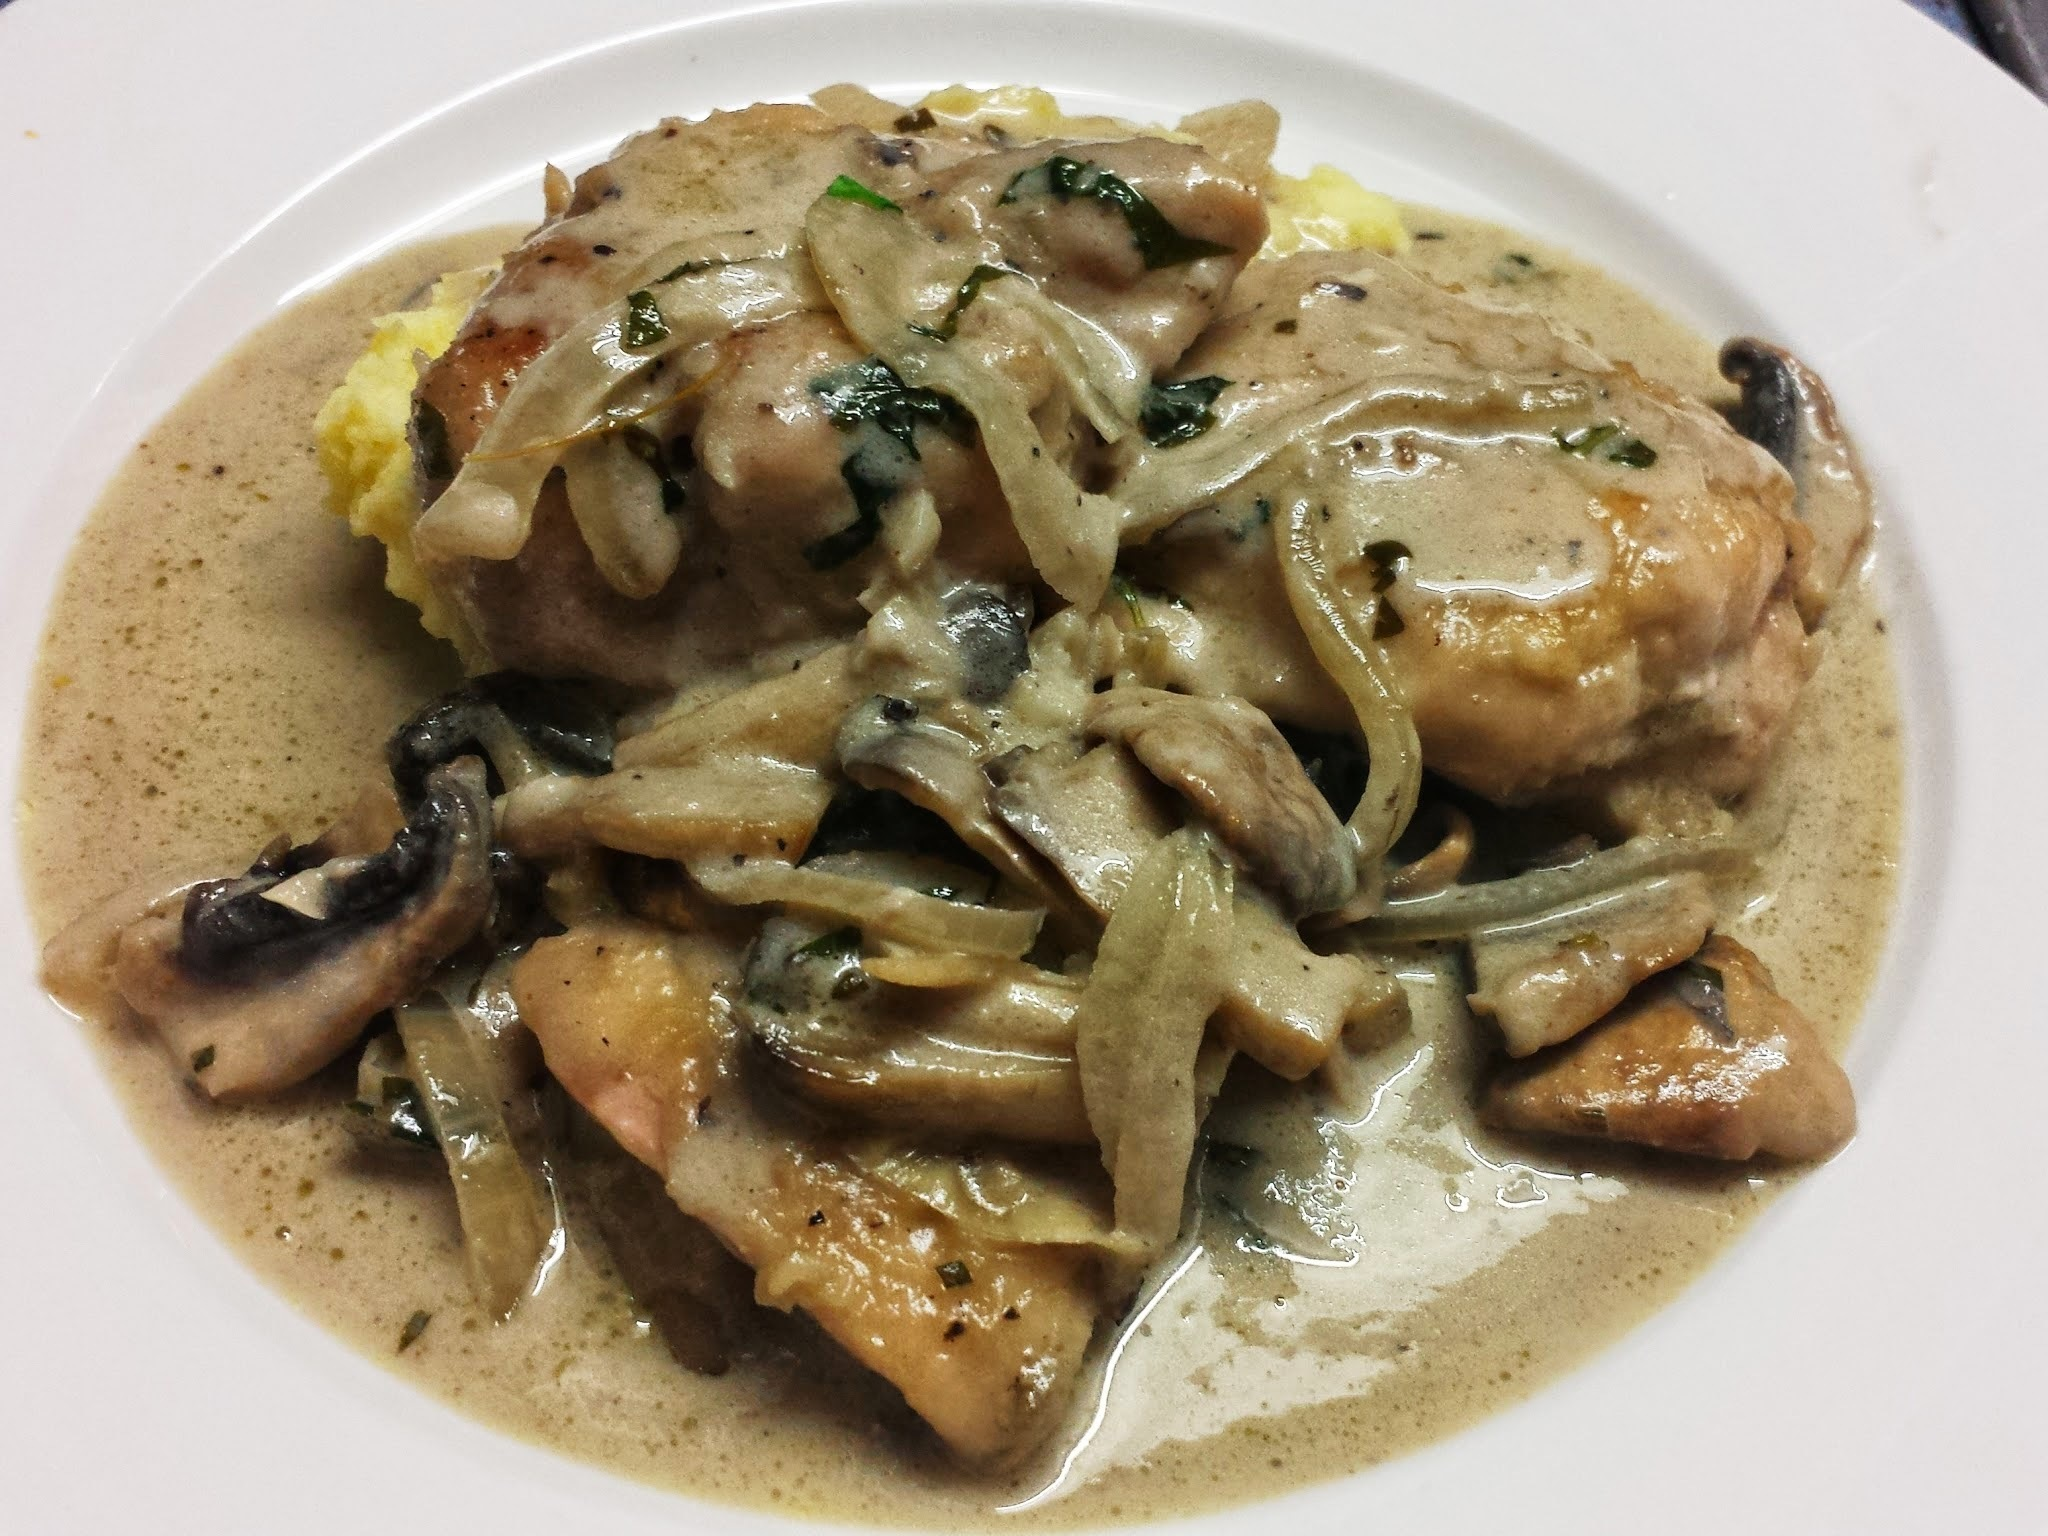 Chicken in a Creamy Mushroom and Herb Sauce